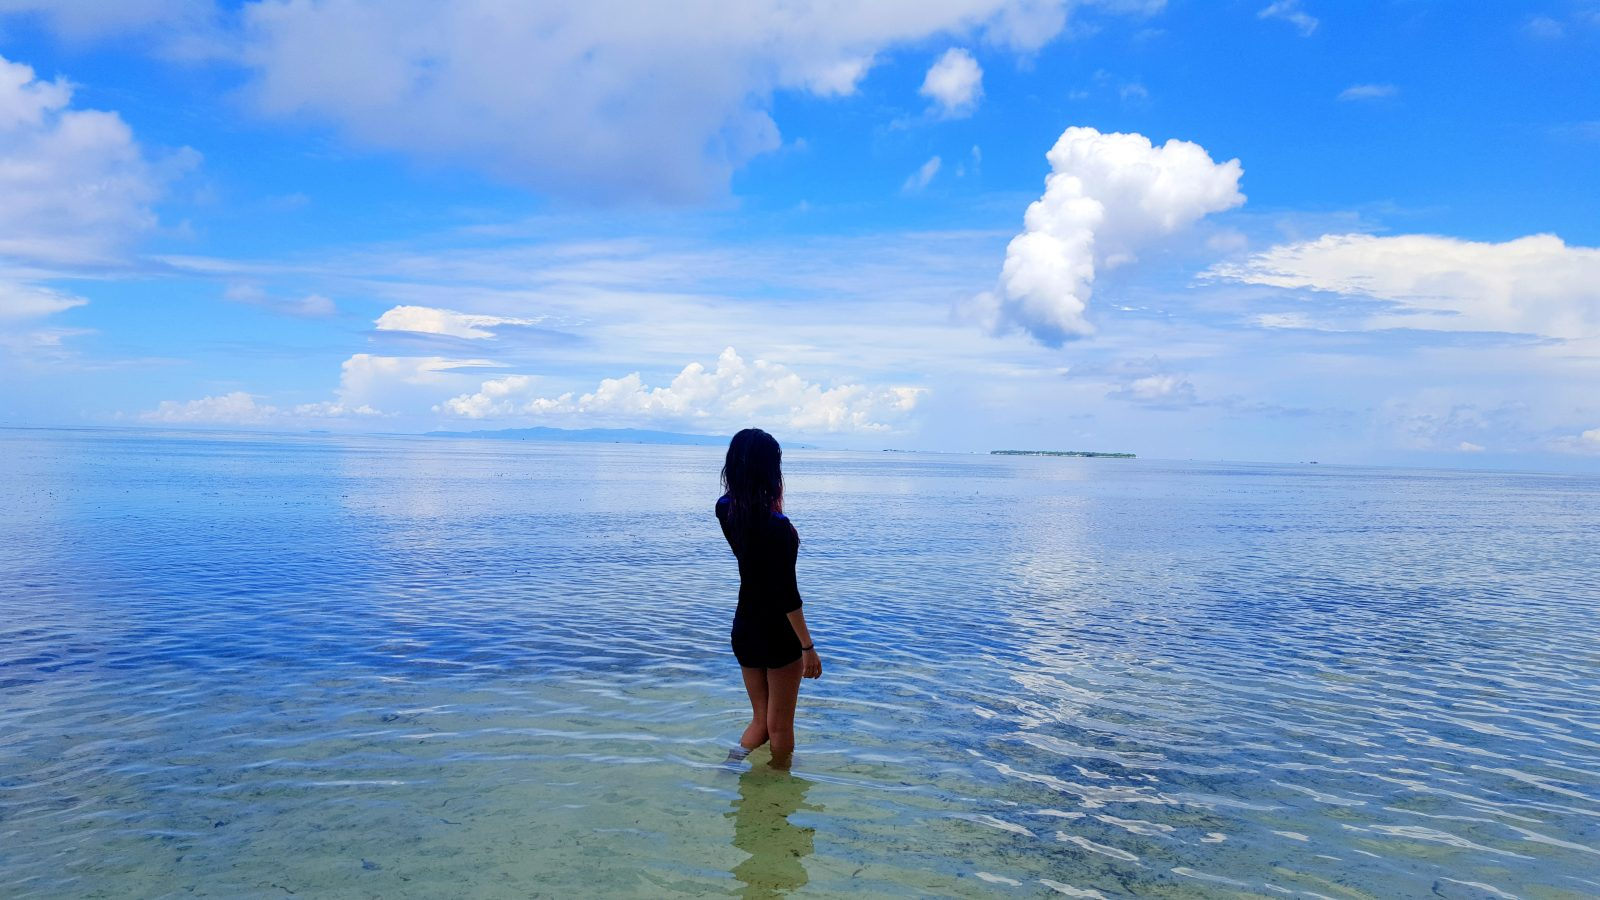 The kind of love that changes you | Bohol | catchingcarla.com